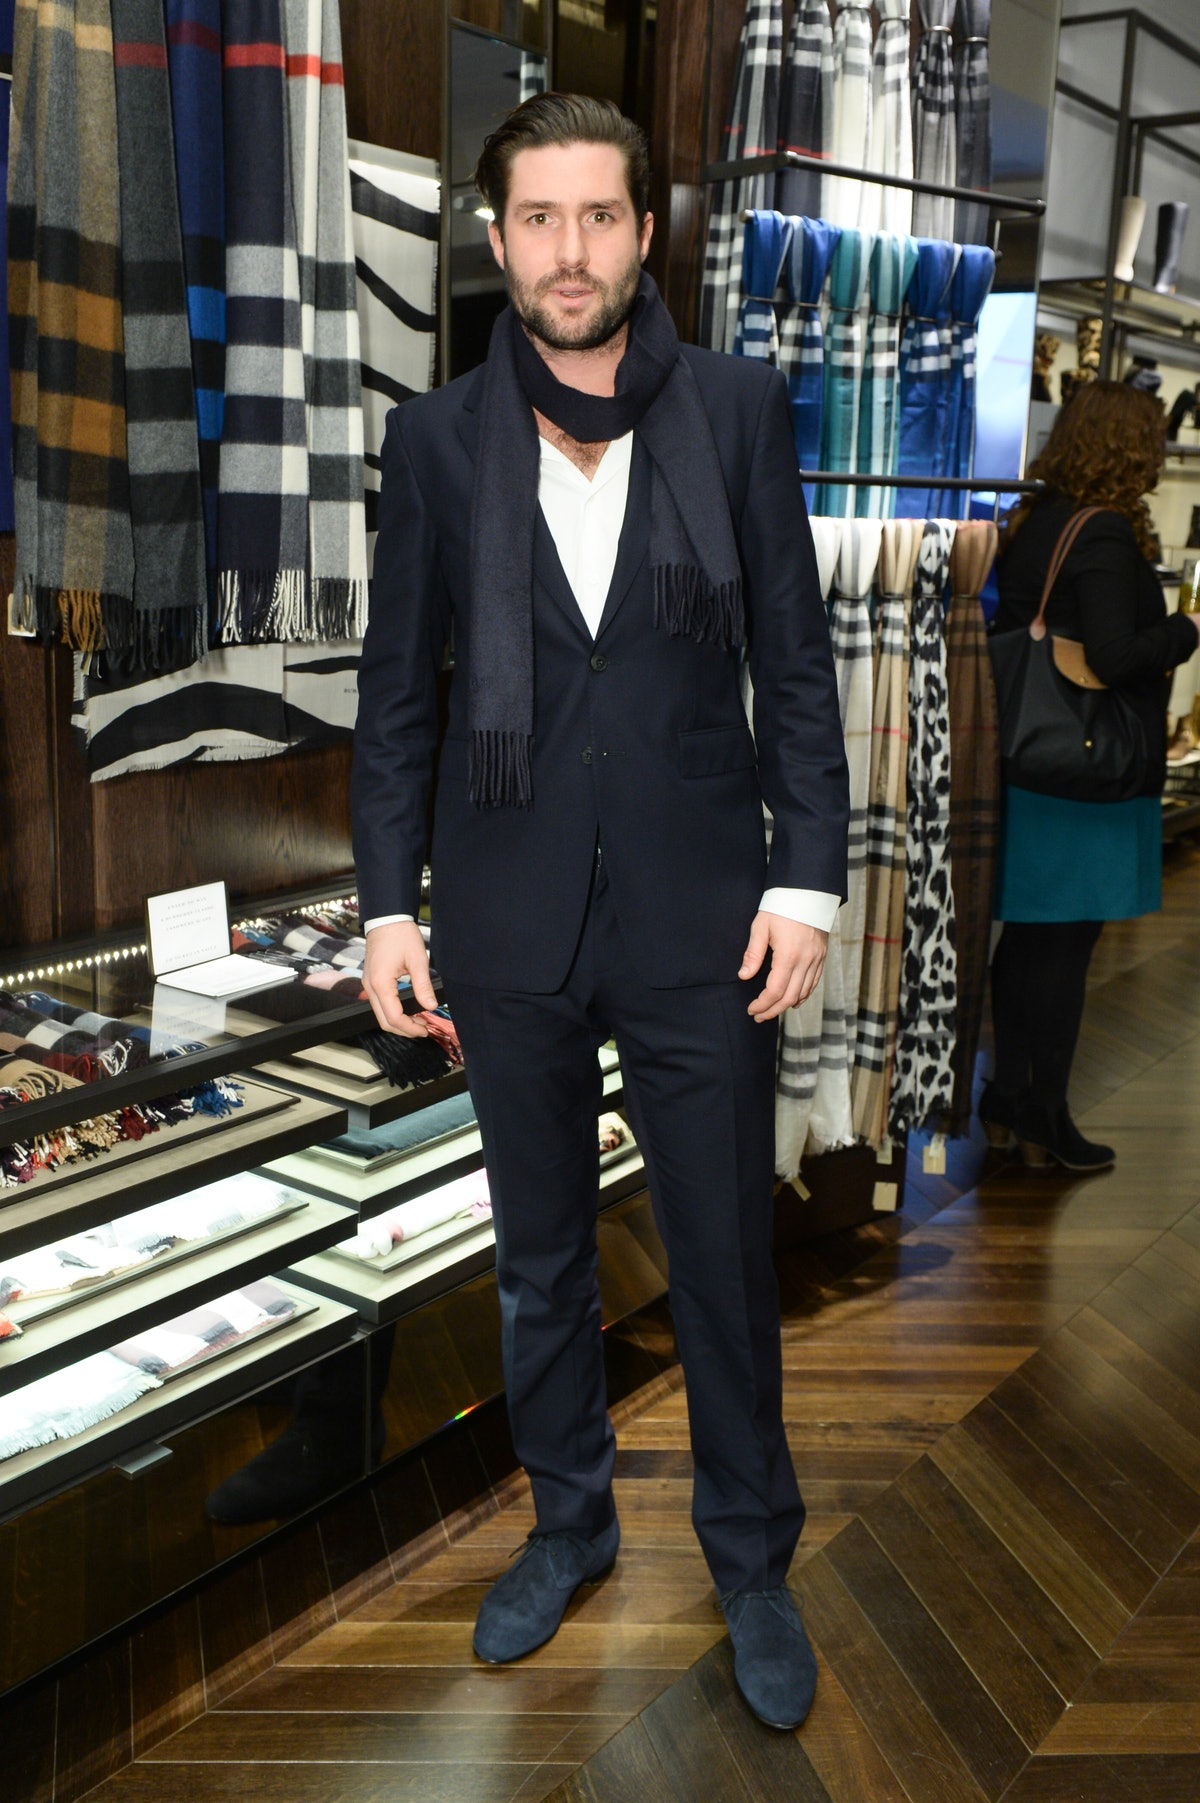 BURBERRY CELEBRATES: THE OPENING OF ITS NEW SOHO STORE HOSTED BY CHELSEA LEYLAND, LEIGH LEZARK, HARLEY VIERA NEWTON & PHIL WINSER